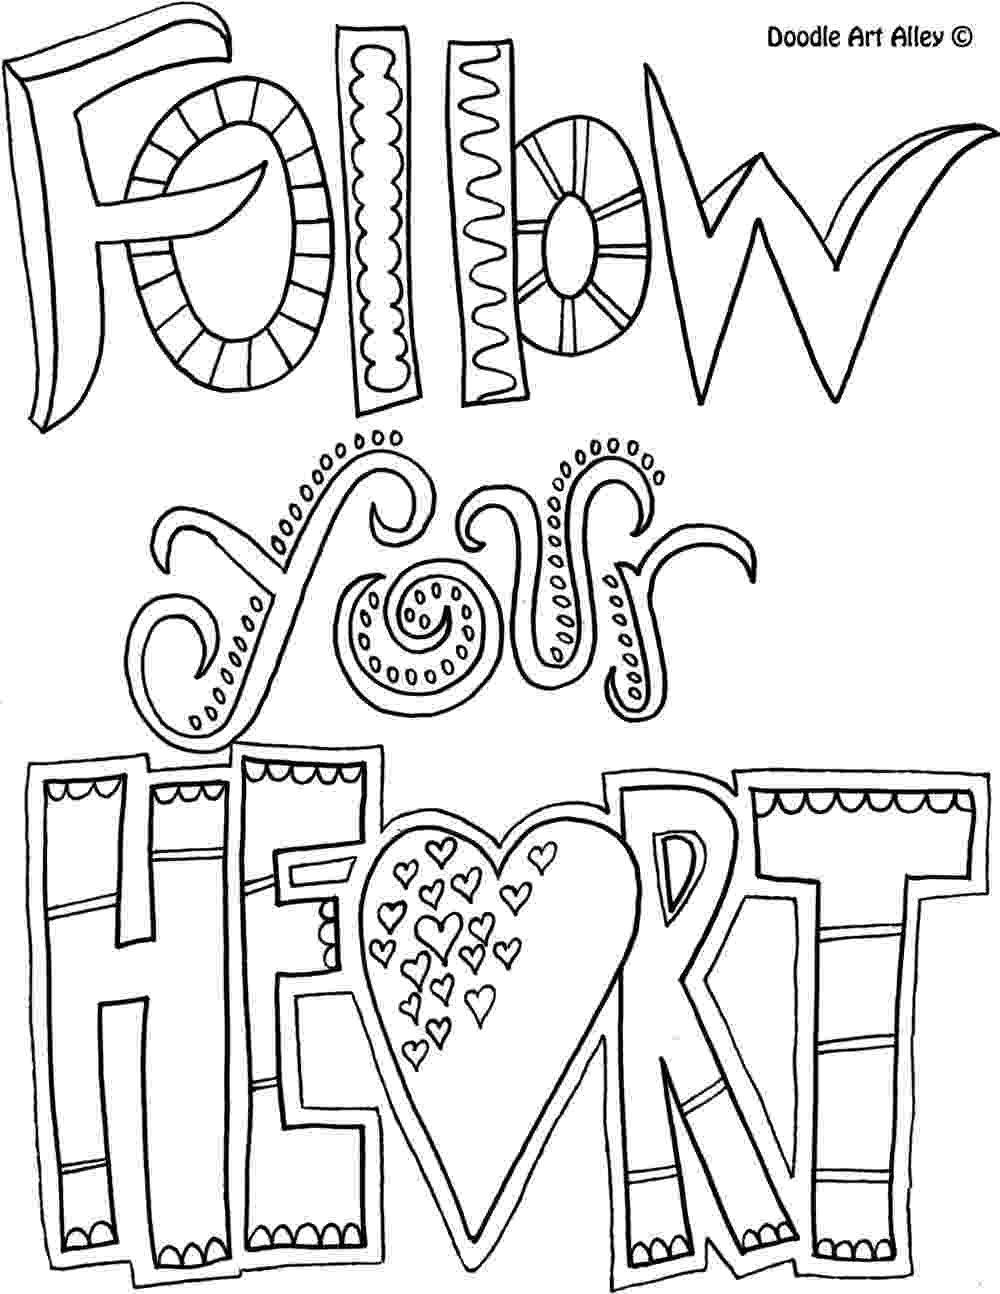 inspirational quotes colouring pages inspirational quotes coloring pages quotesgram colouring pages inspirational quotes